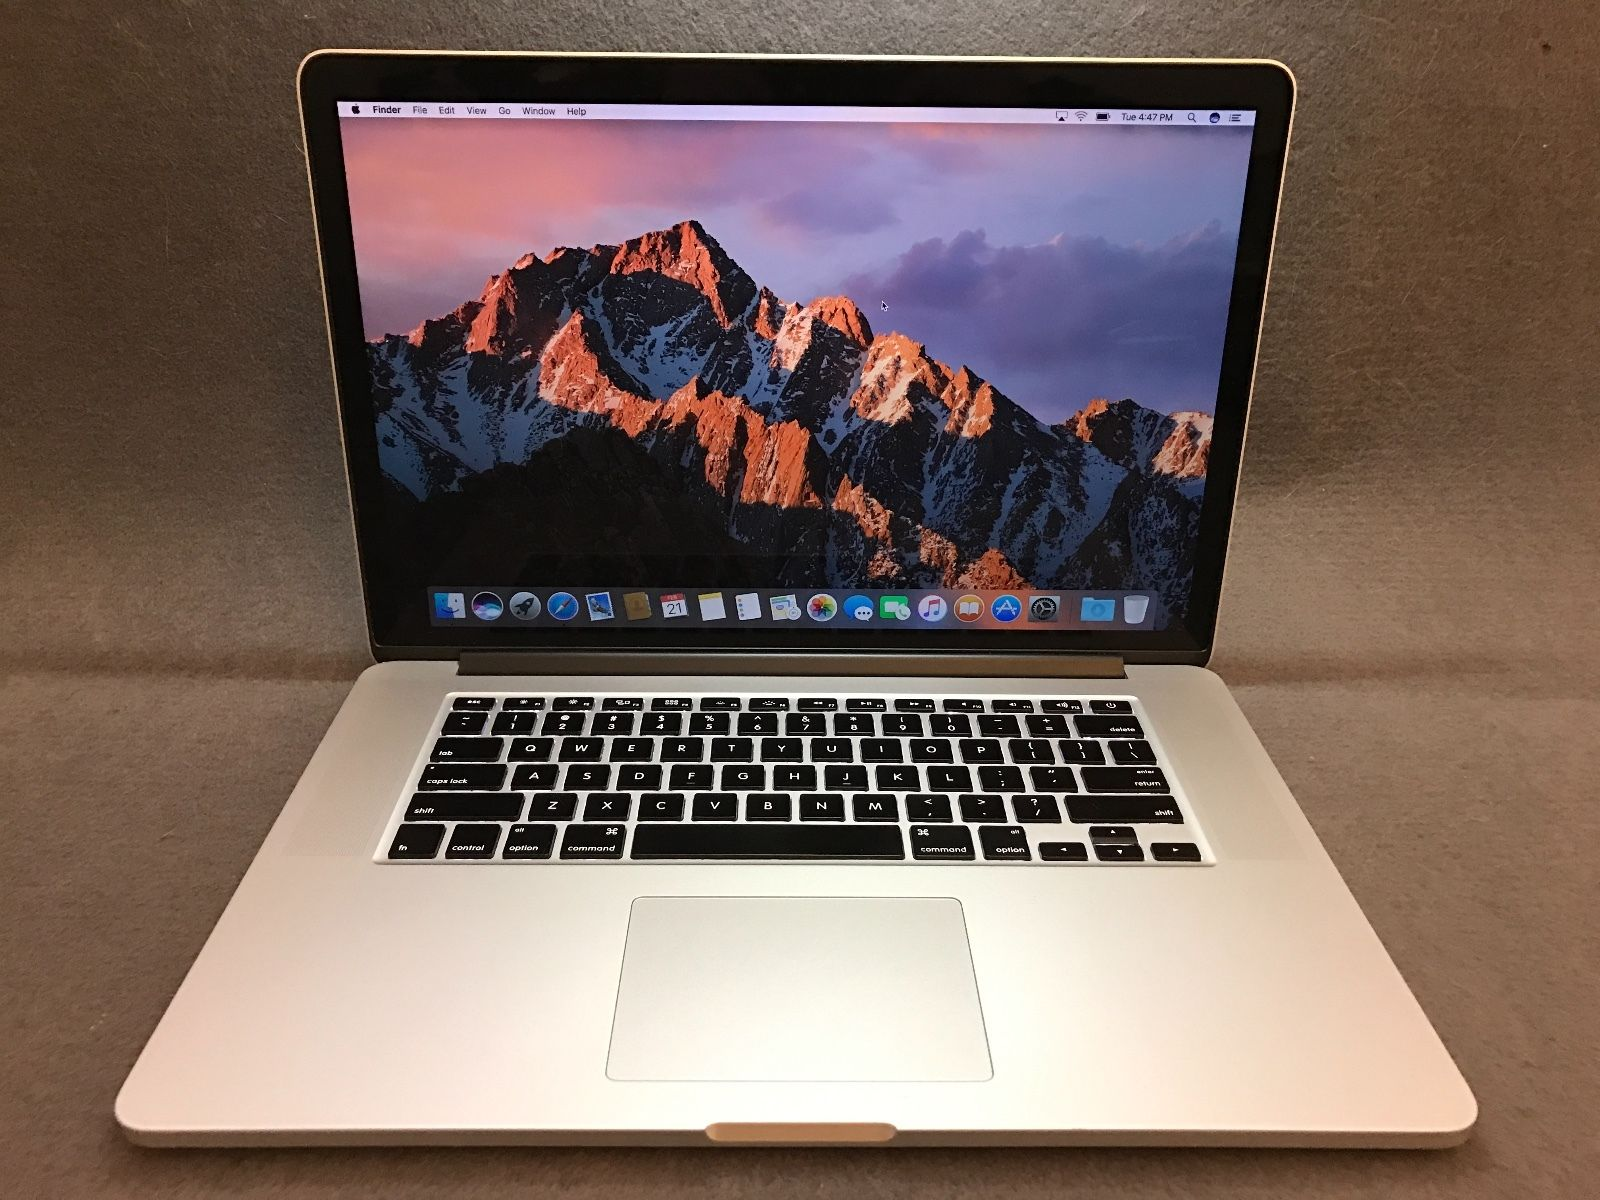 MacBook Pro me293 15inch Late 2013 Core i7-4750HQ 2.0 GHz Ram 8GB SSD 256GB Mới 99